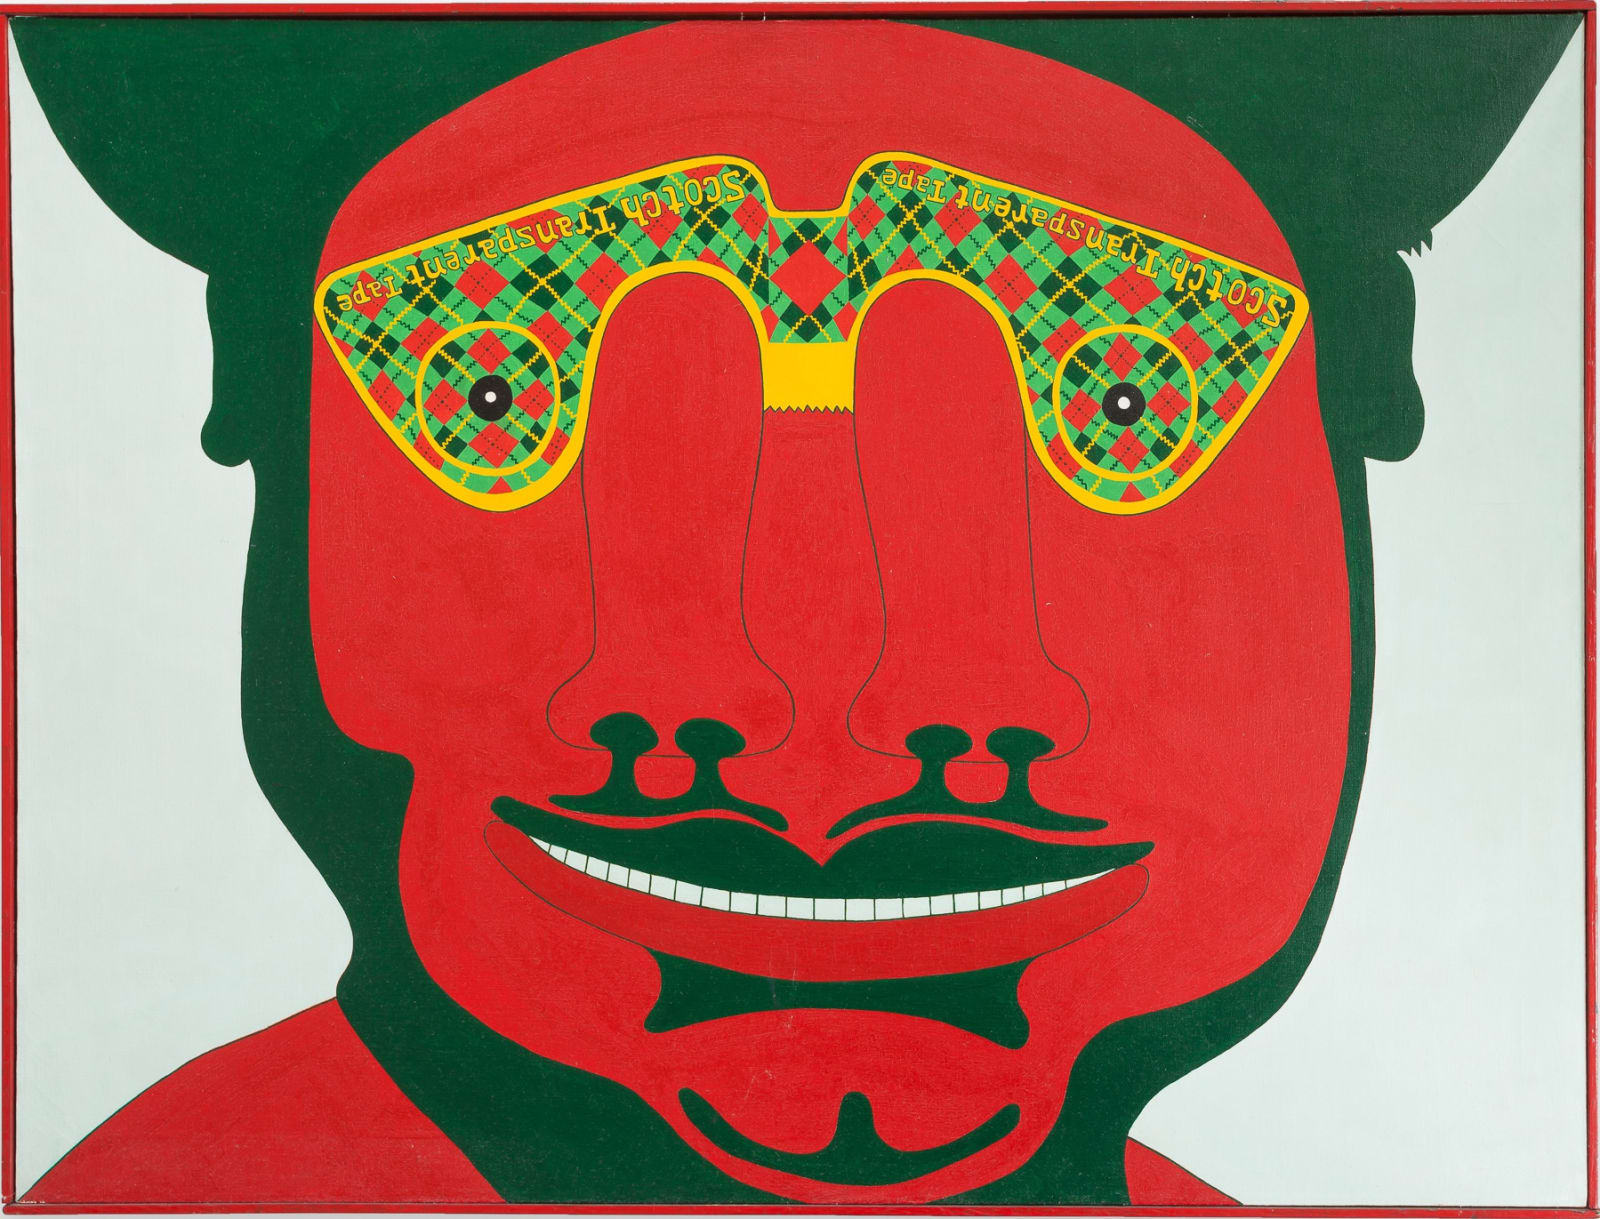 Son of Sol Moscot, 1965, private collection (photo by Robert Chase Heishman)